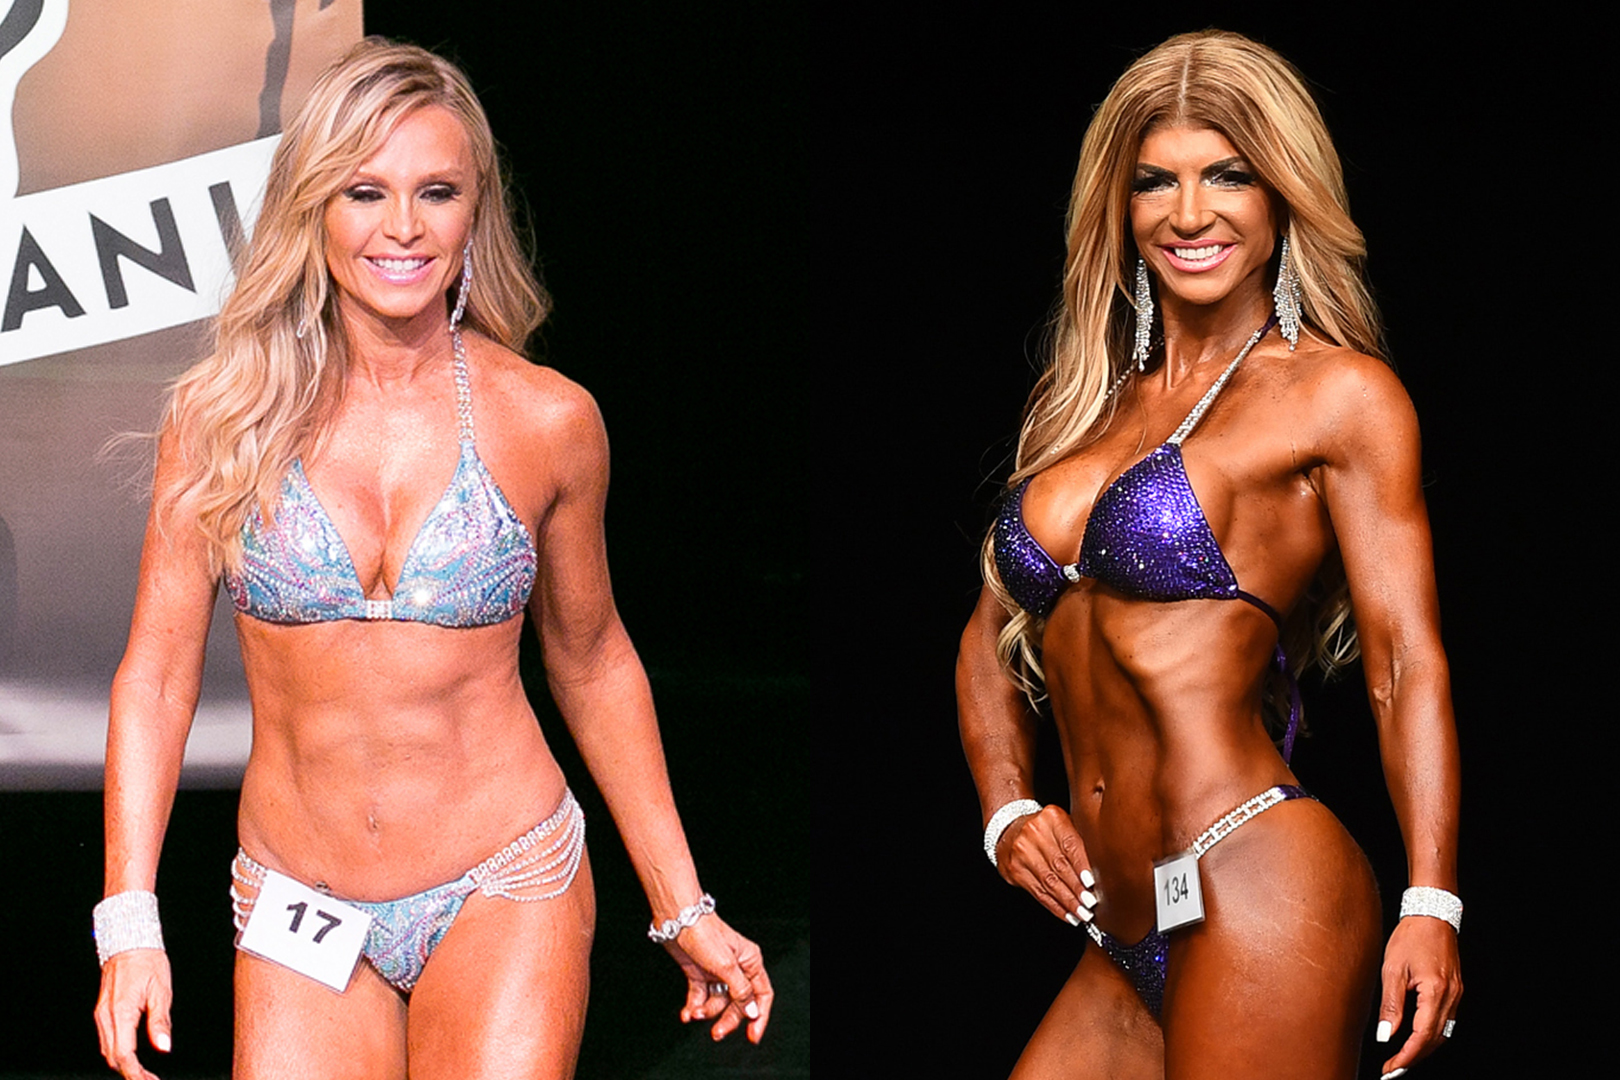 f29b861d858a6 This Is How Tamra Judge Reacted to Teresa Giudice s Bodybuilding Debut